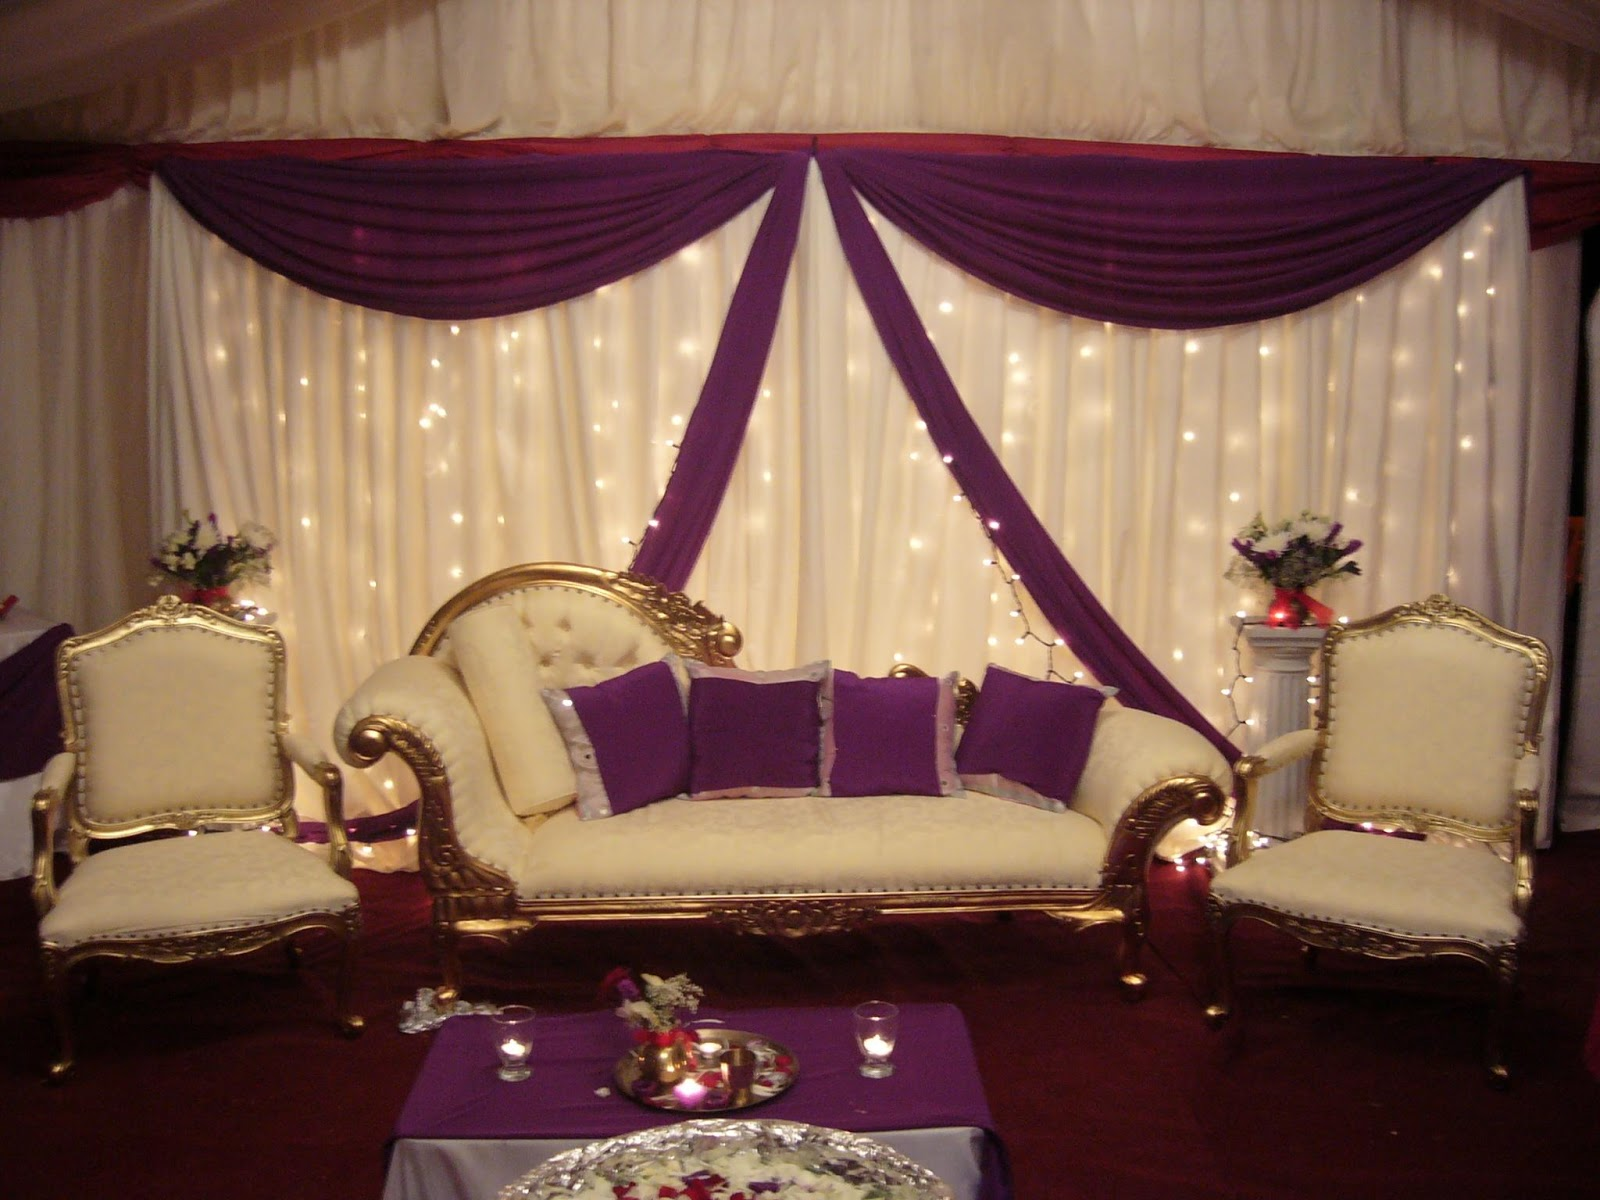 Luxury wedding stage decoration in karachi wedding pakistani wedding stage decorations uncategorized archives karachi halls junglespirit Images